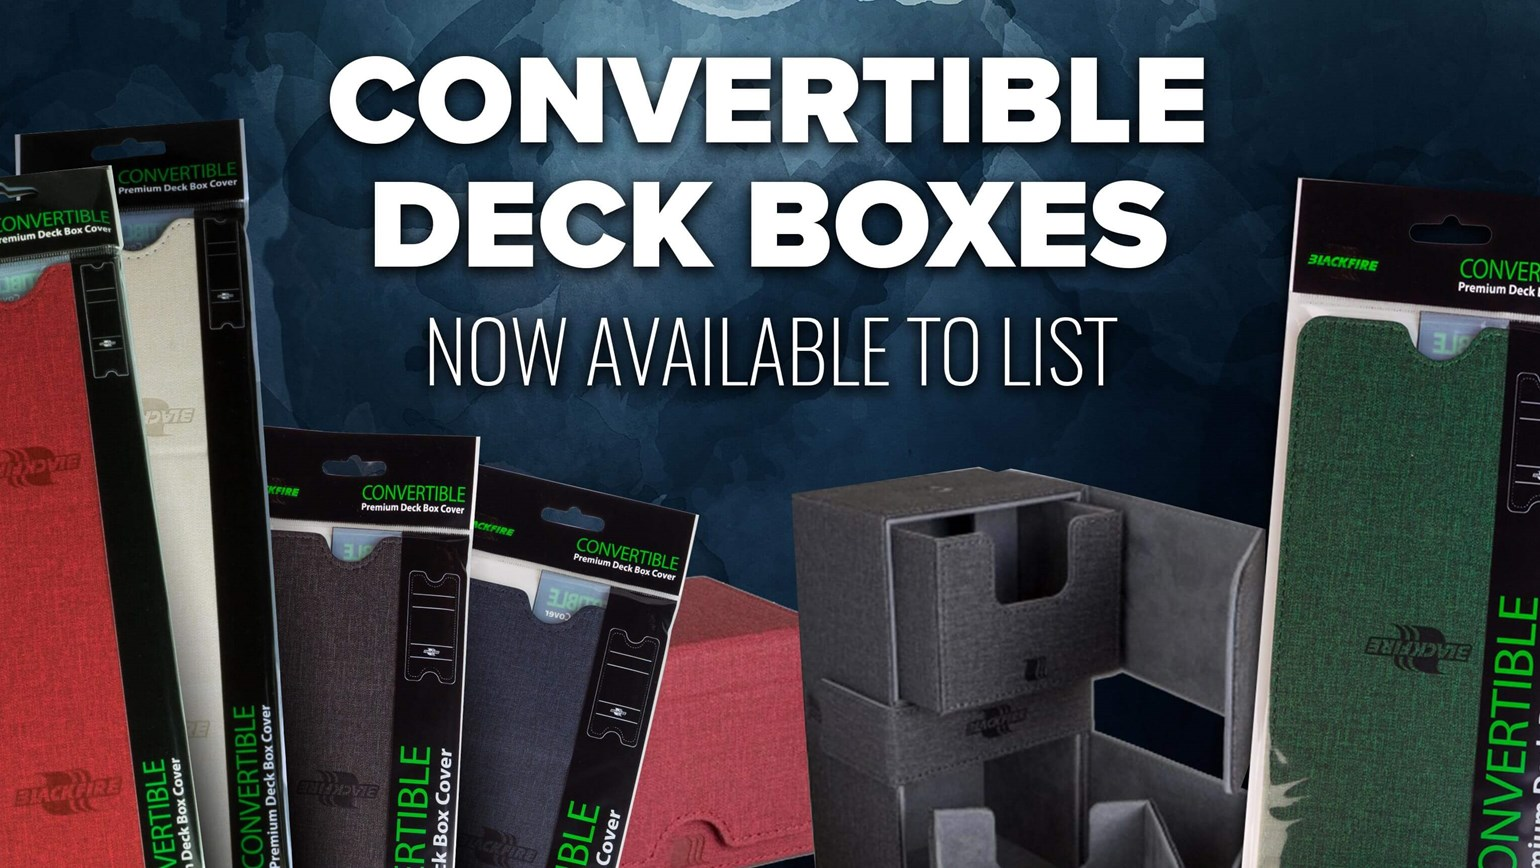 Convertible Deck Boxes from Legion Premium Supplies Added to TCGplayer Catalog